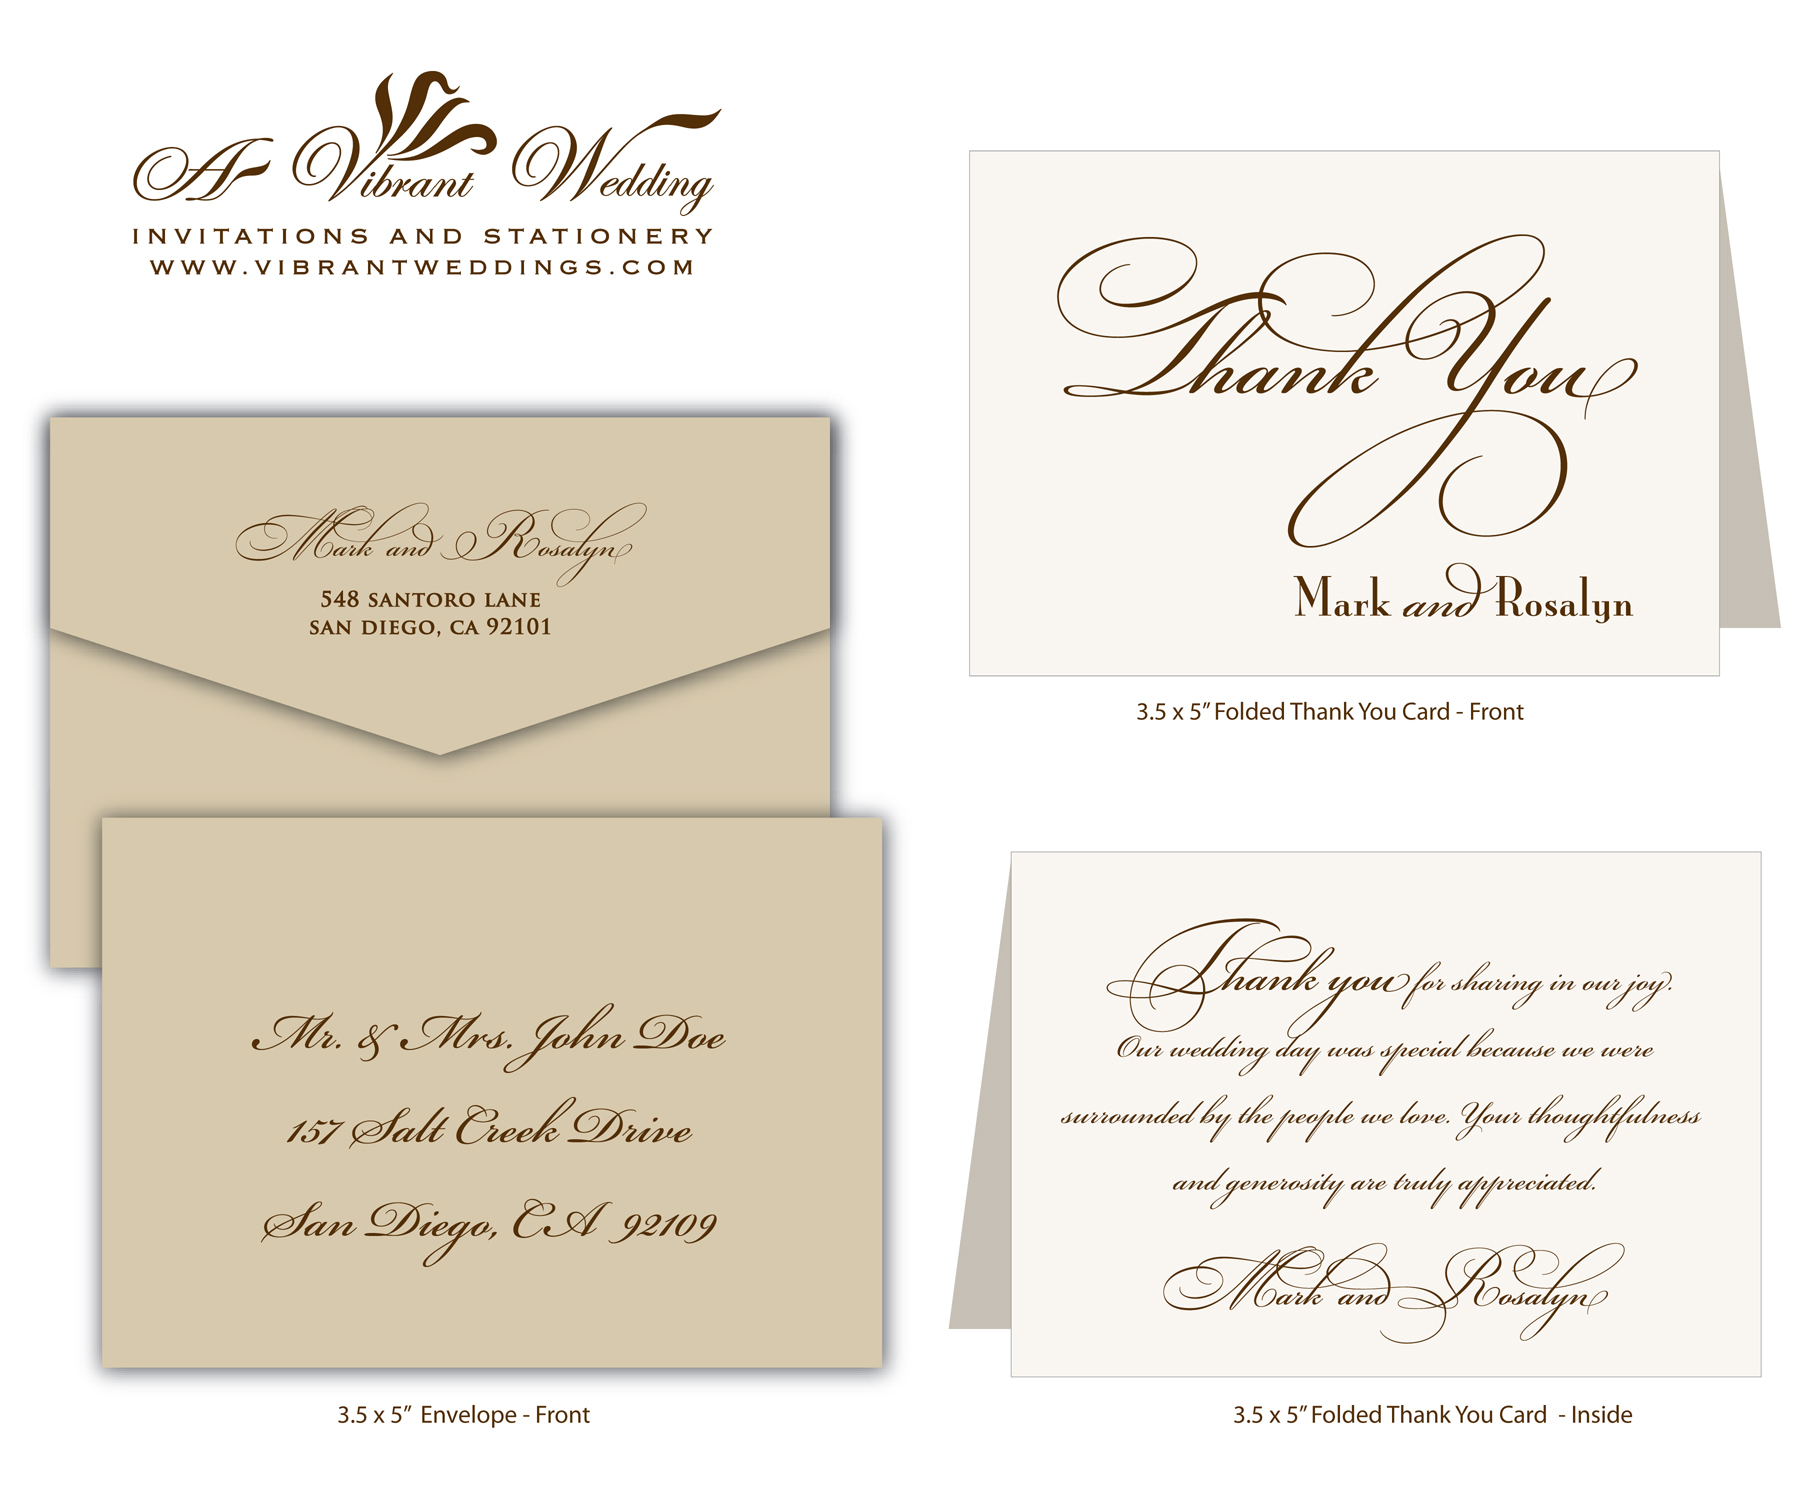 Thank You Wording A Vibrant Wedding – What to Write in Wedding Thank You Cards Sample